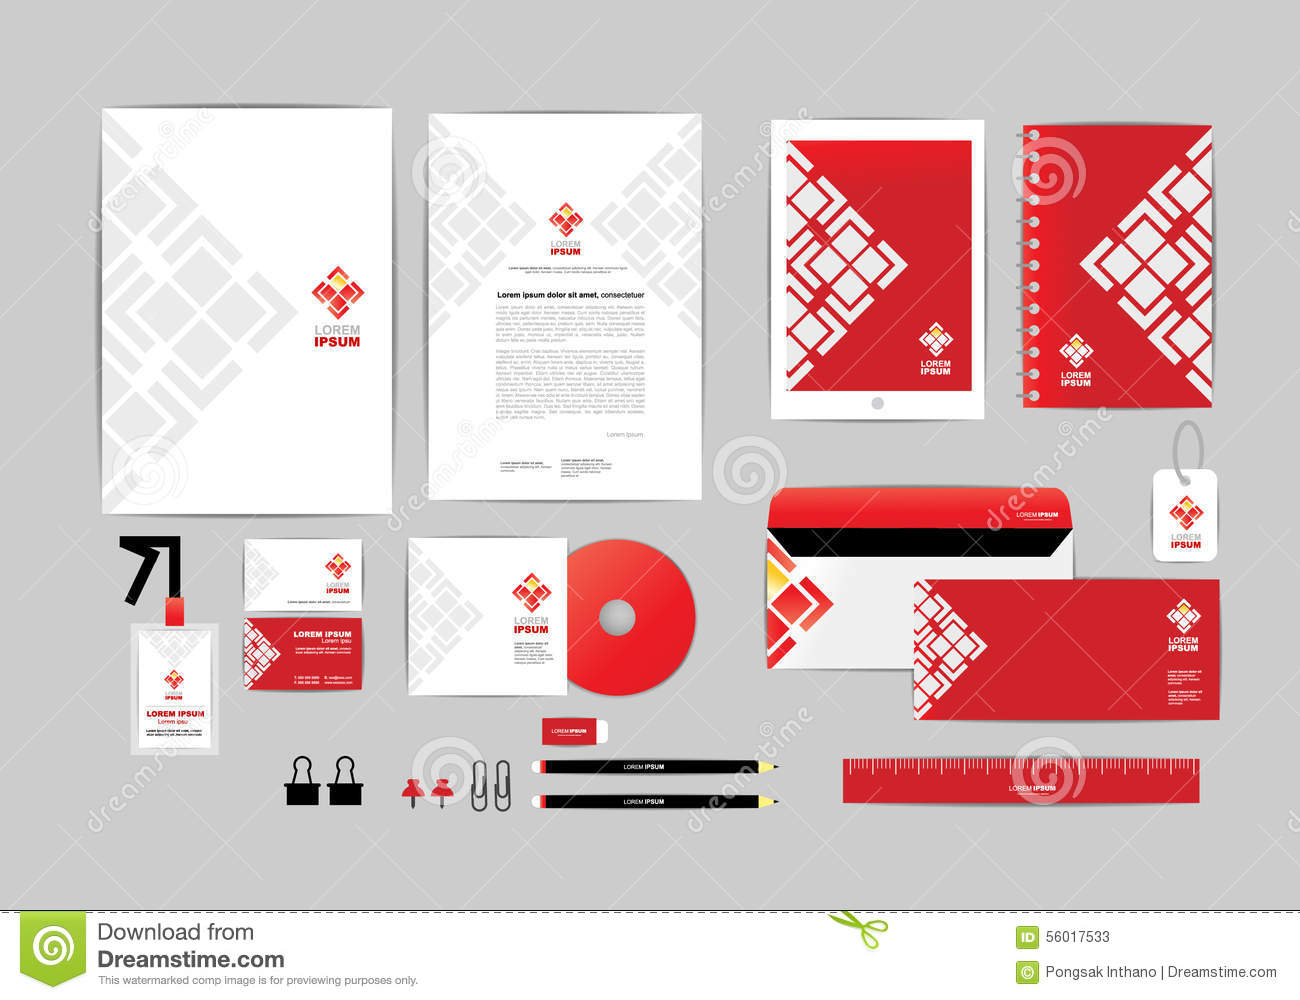 Red and white with triangle corporate identity template for your red and white with triangle corporate identity template for your business g cheaphphosting Choice Image